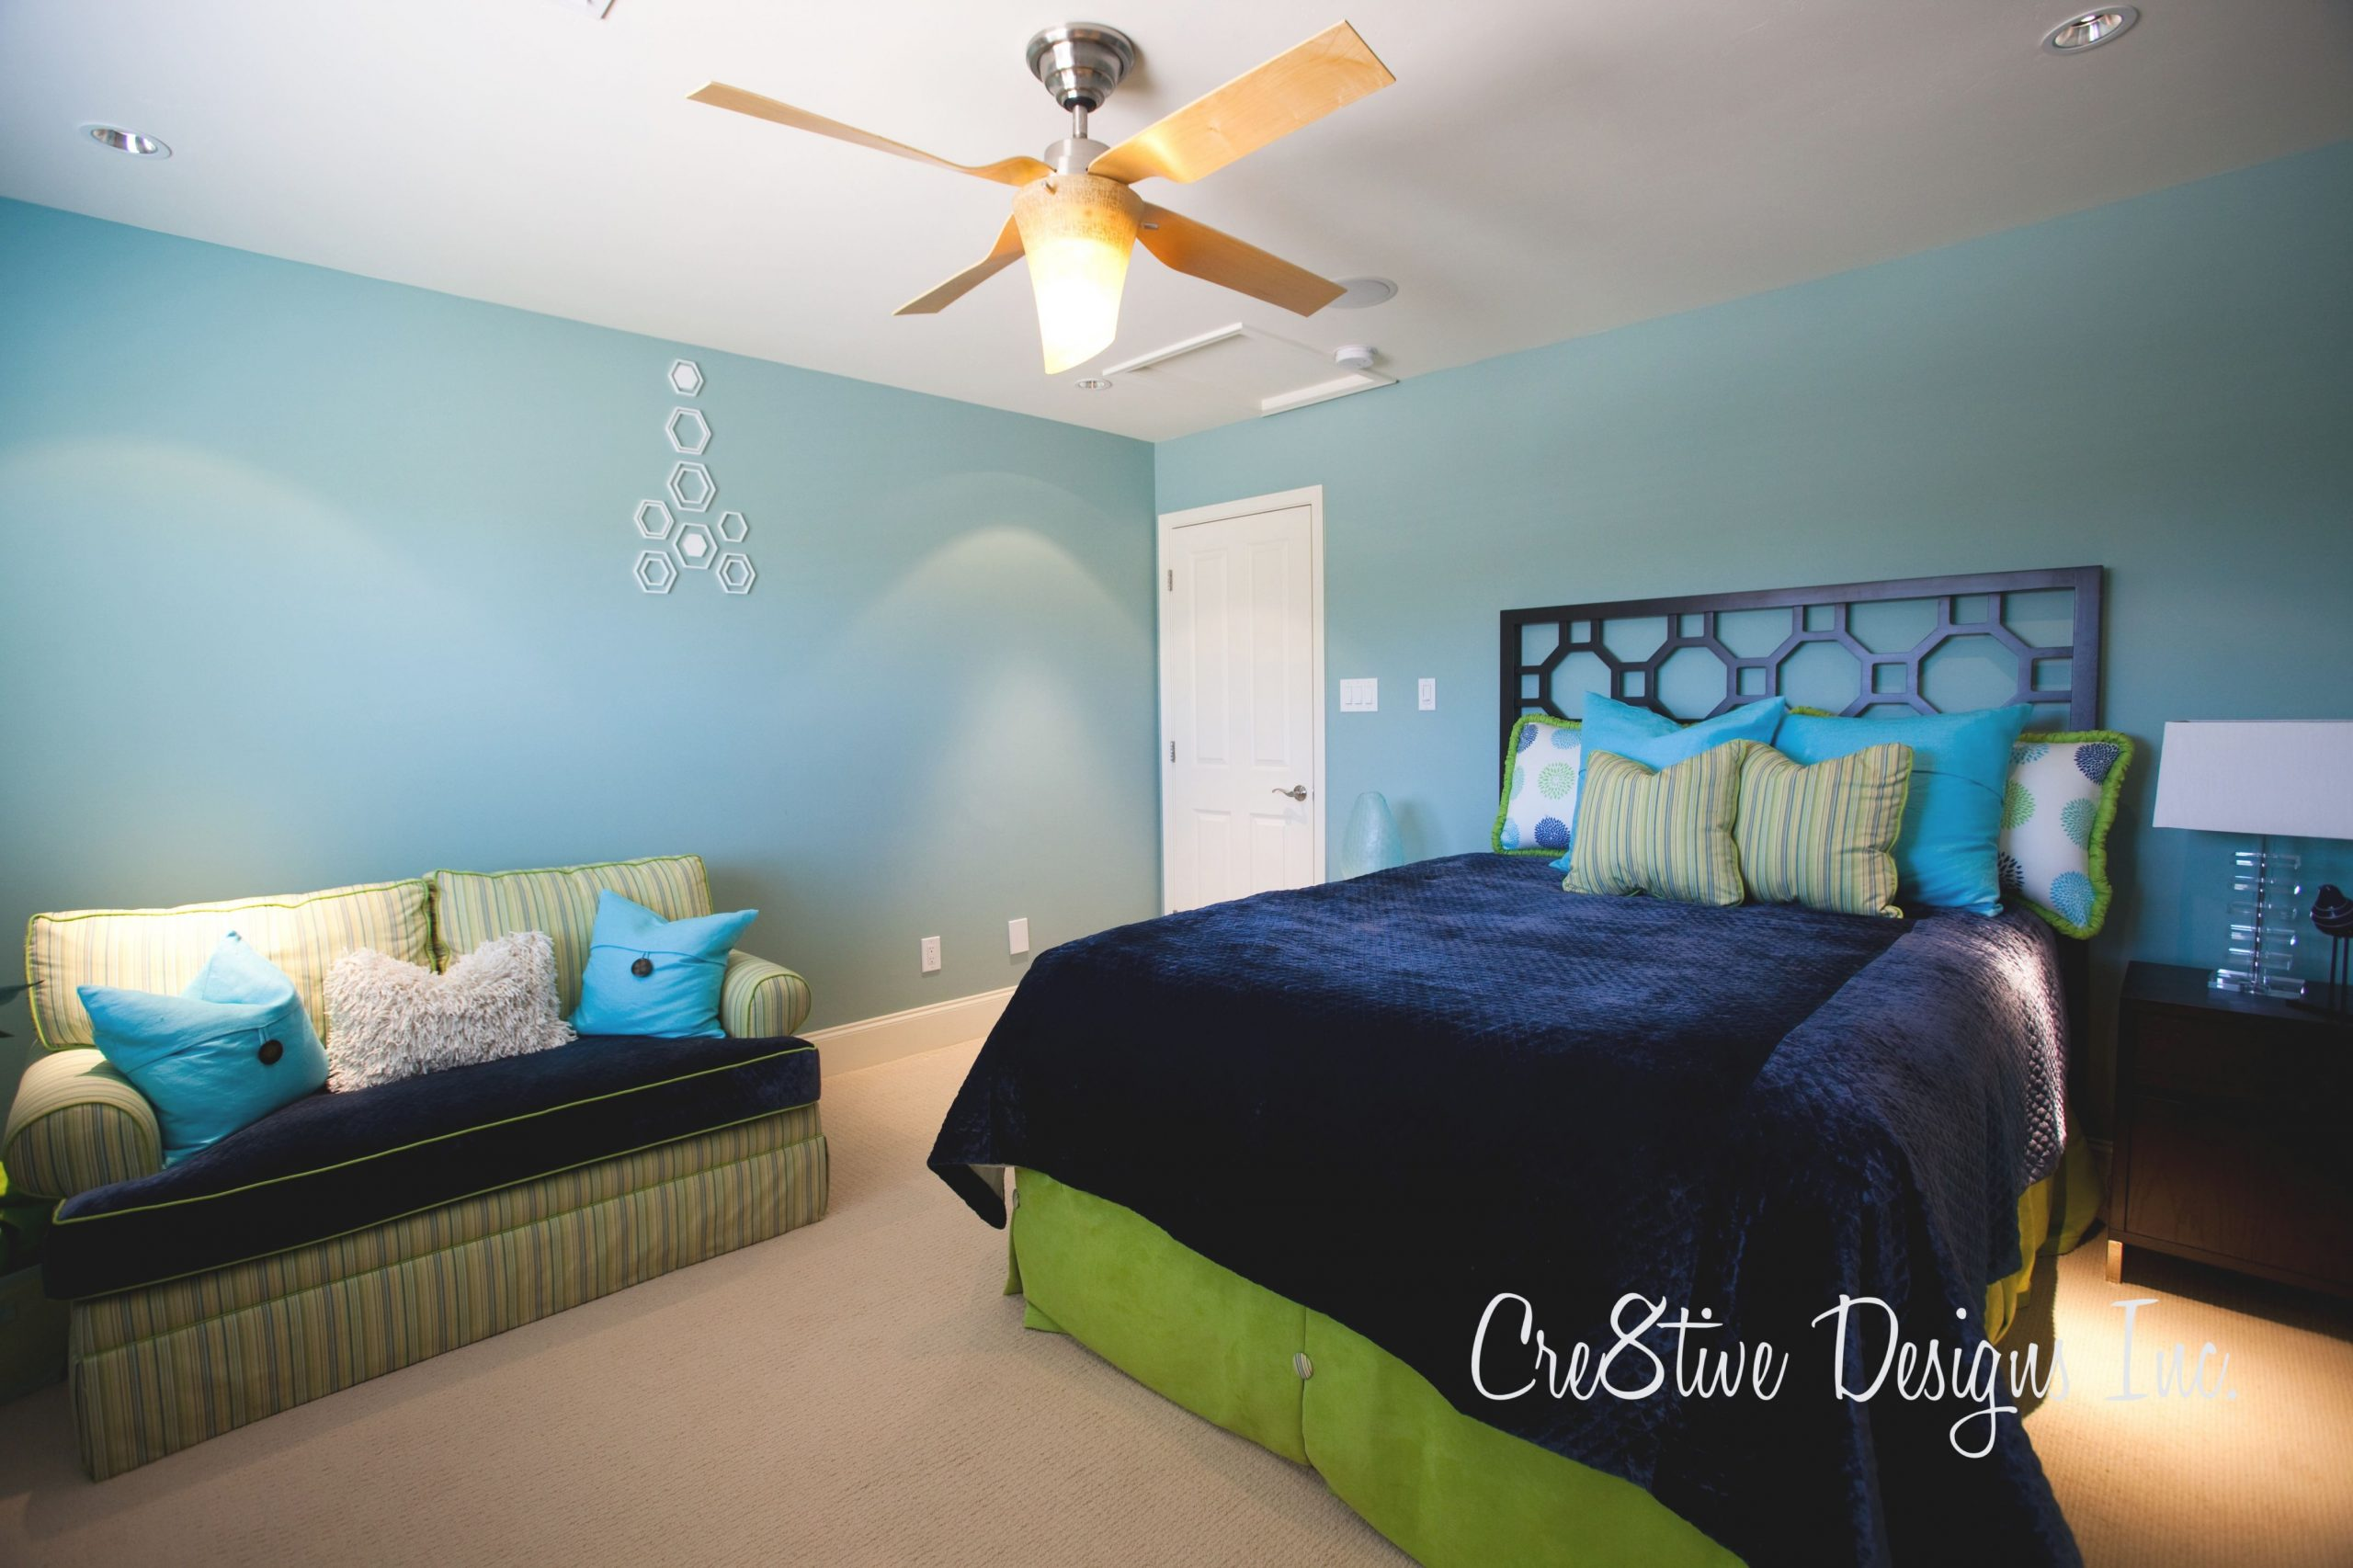 Bedroom Decorating Ideas Green Paint And Wallpaper Green And pertaining to Inspirational Blue And Green Bedroom Decorating Ideas